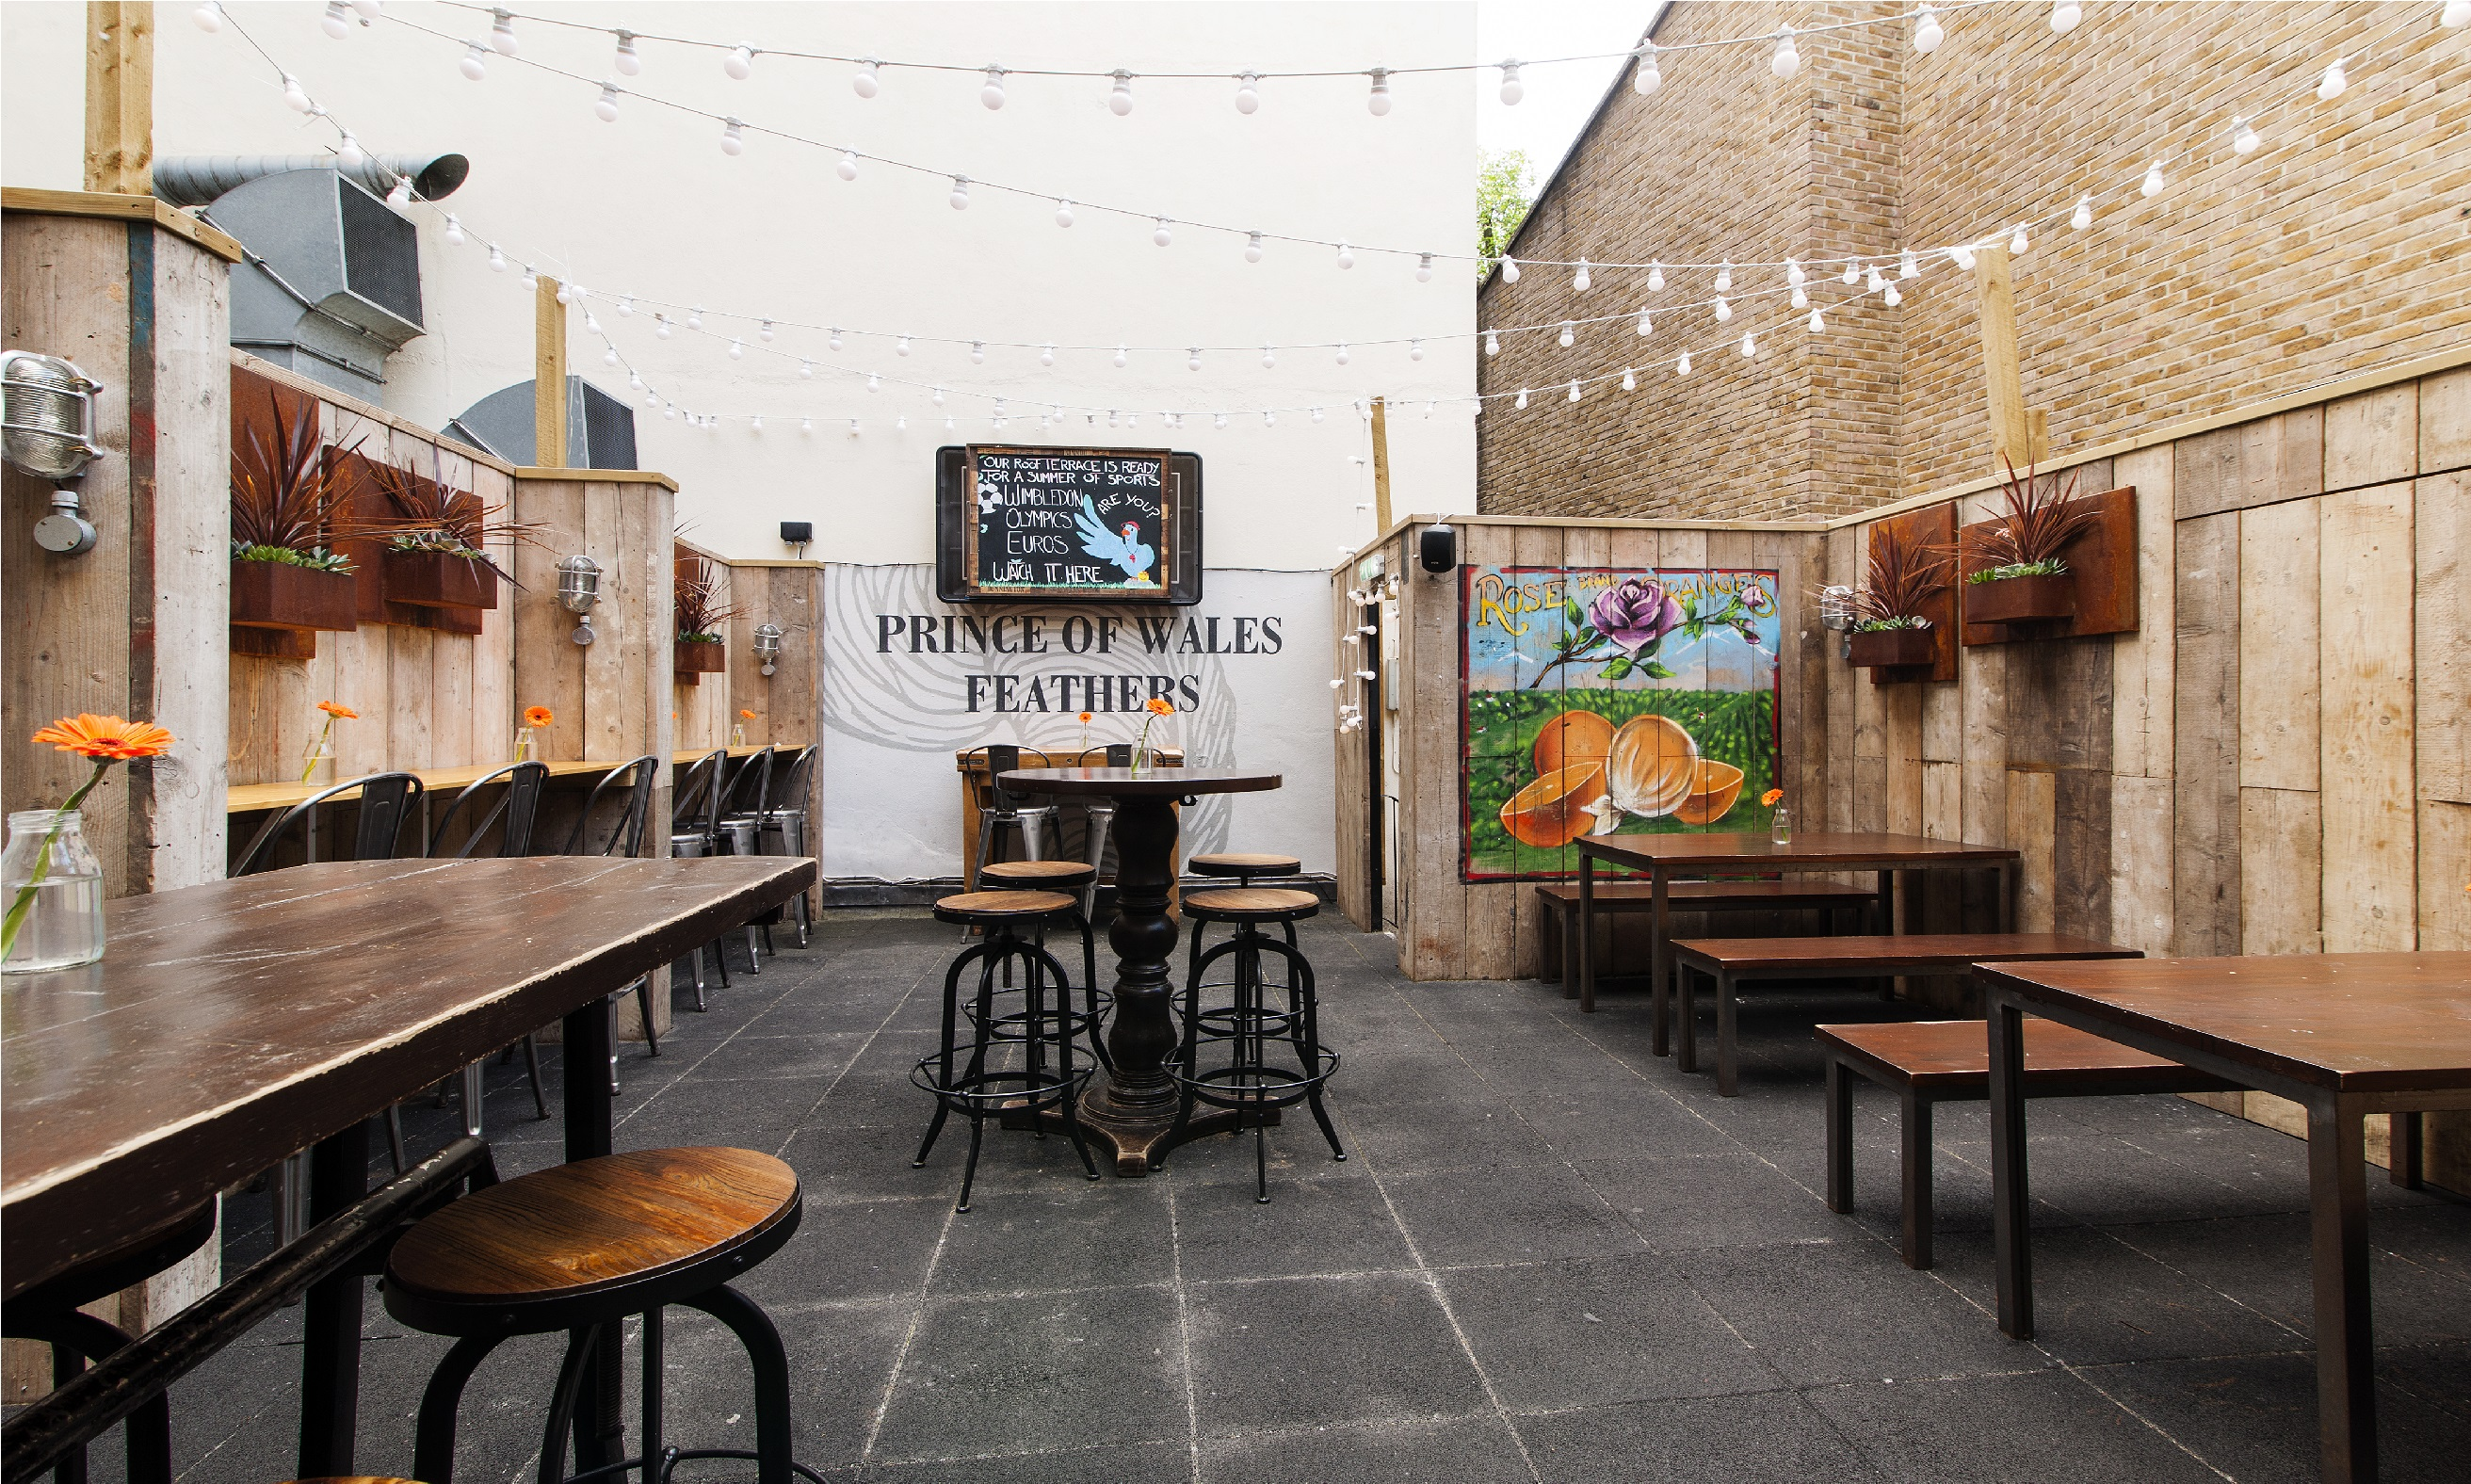 Book the roof terrace at the prince of wales feathers for The terrace house book